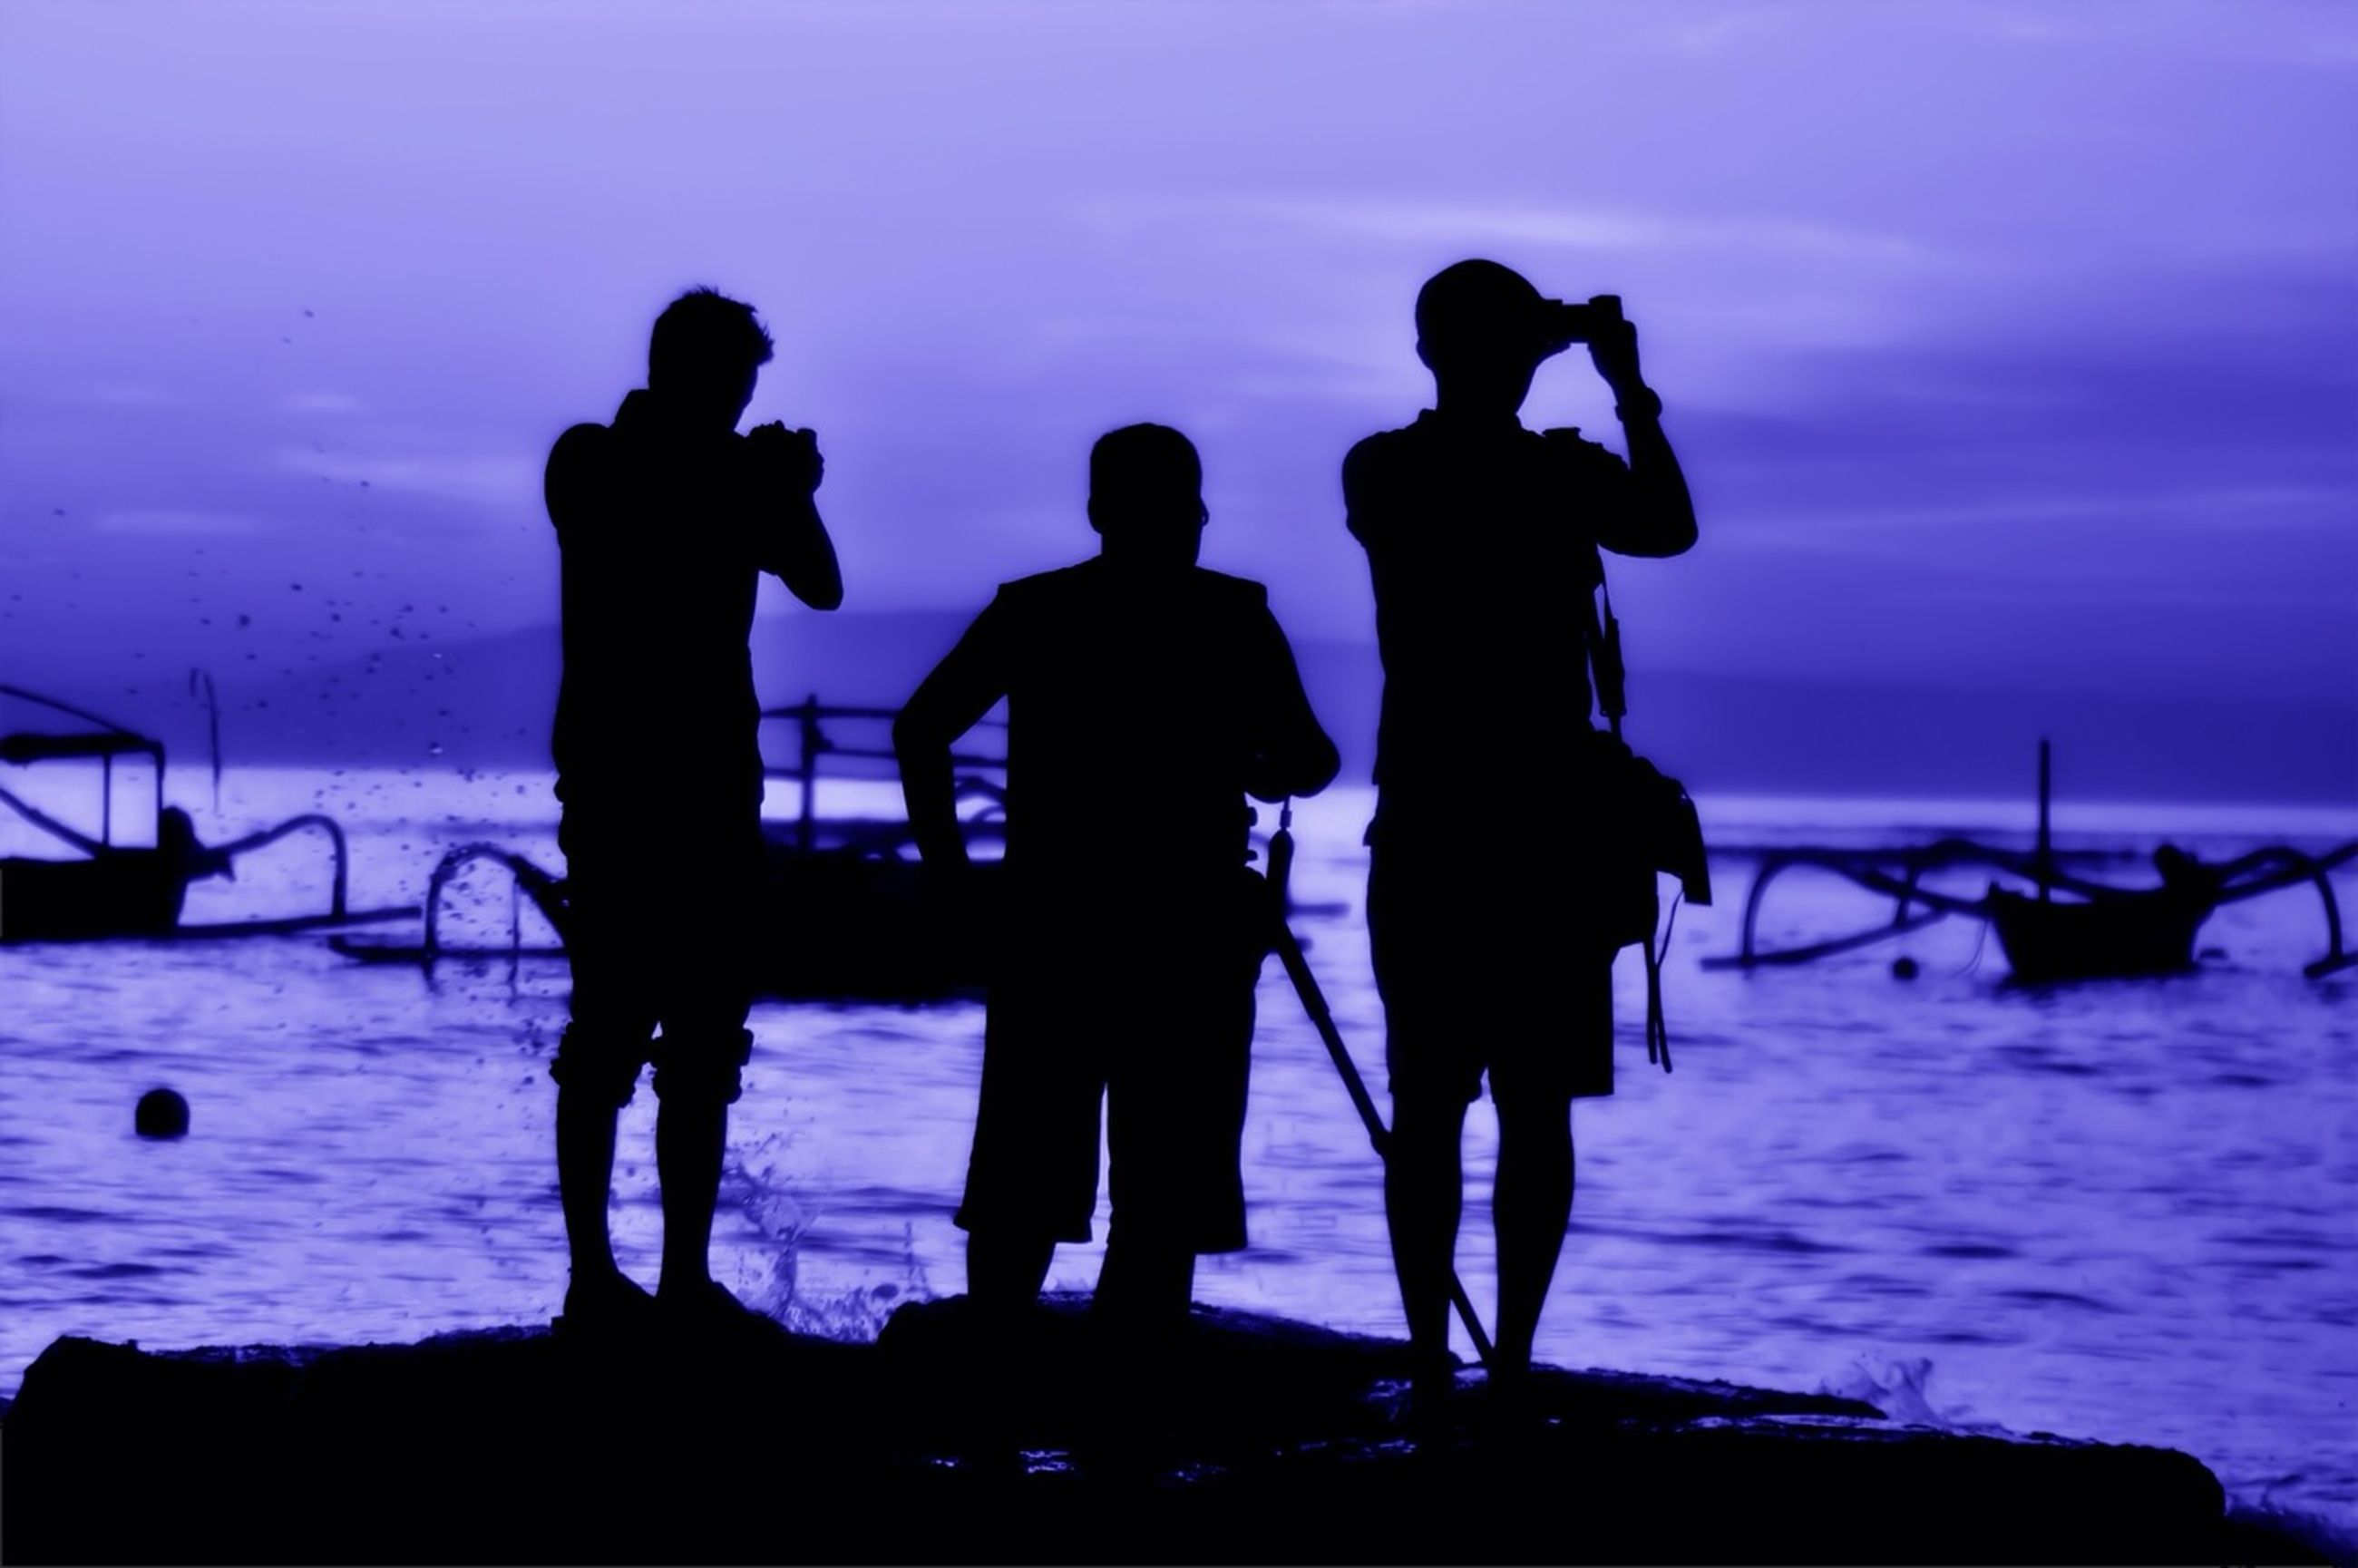 silhouette, togetherness, men, sunset, water, lifestyles, leisure activity, sea, person, sky, standing, bonding, friendship, medium group of people, enjoyment, beach, love